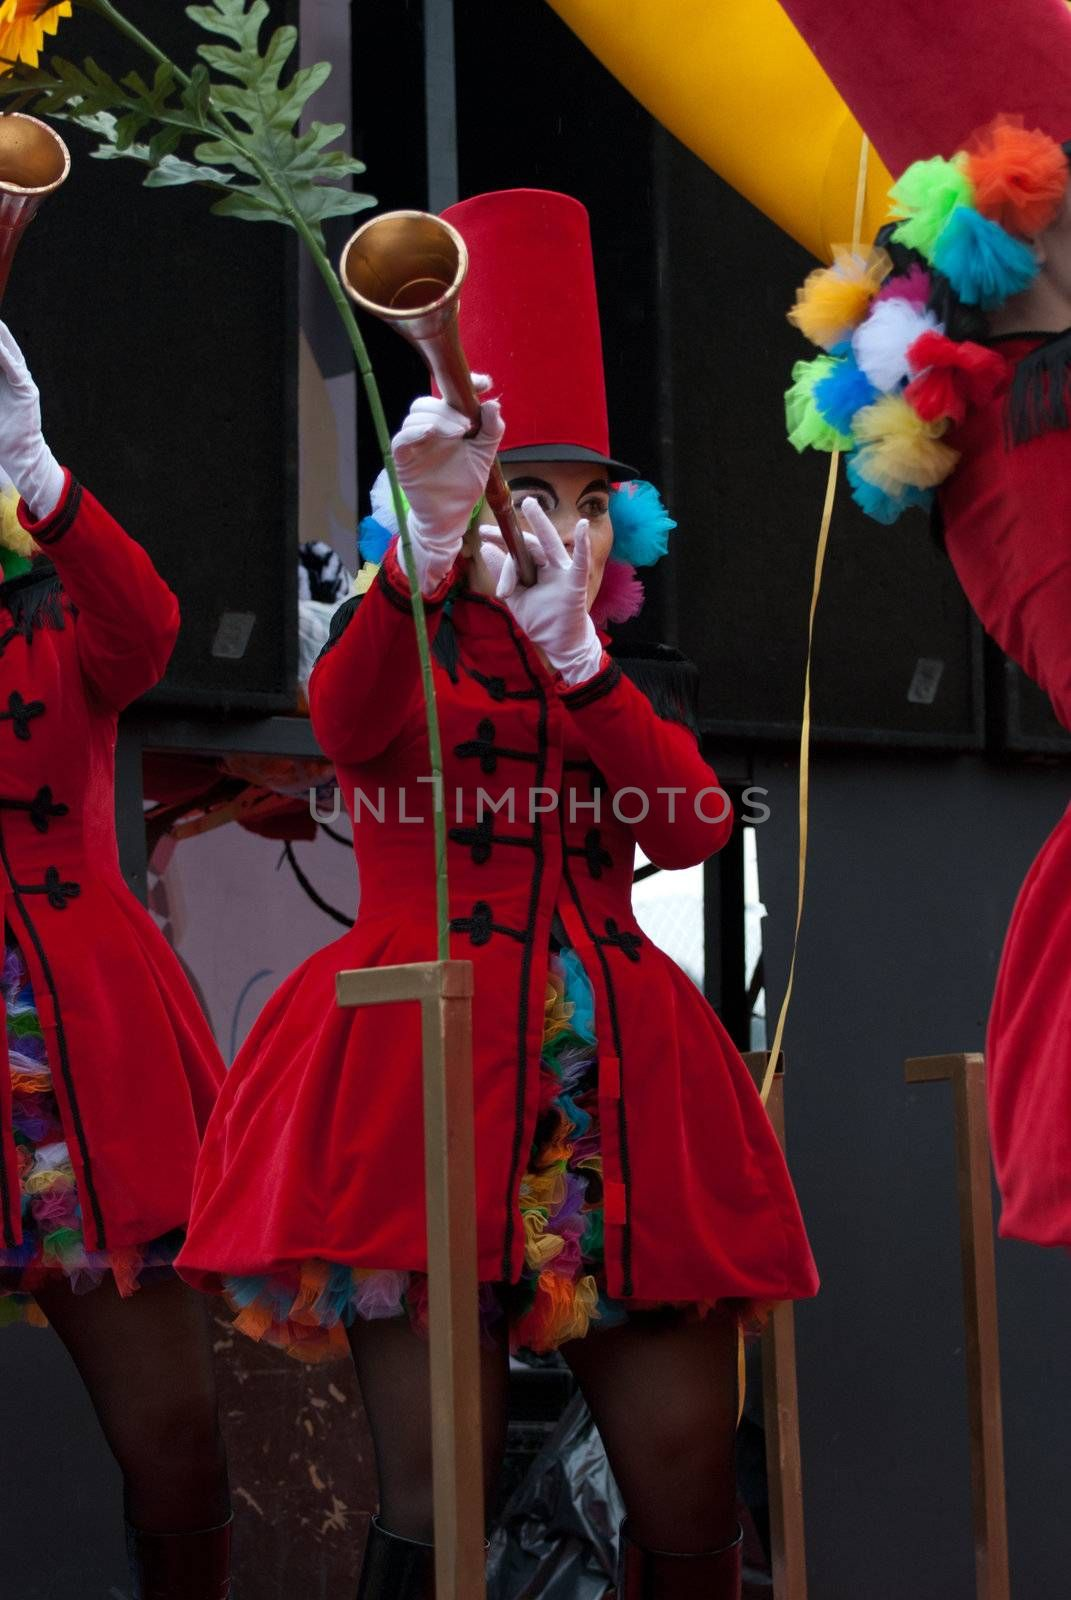 OVAR, PORTUGAL - MARCH 8: Group 'Palhacinhas'  during the Carnival Parade on March 8, 2011 in Ovar, Portugal.